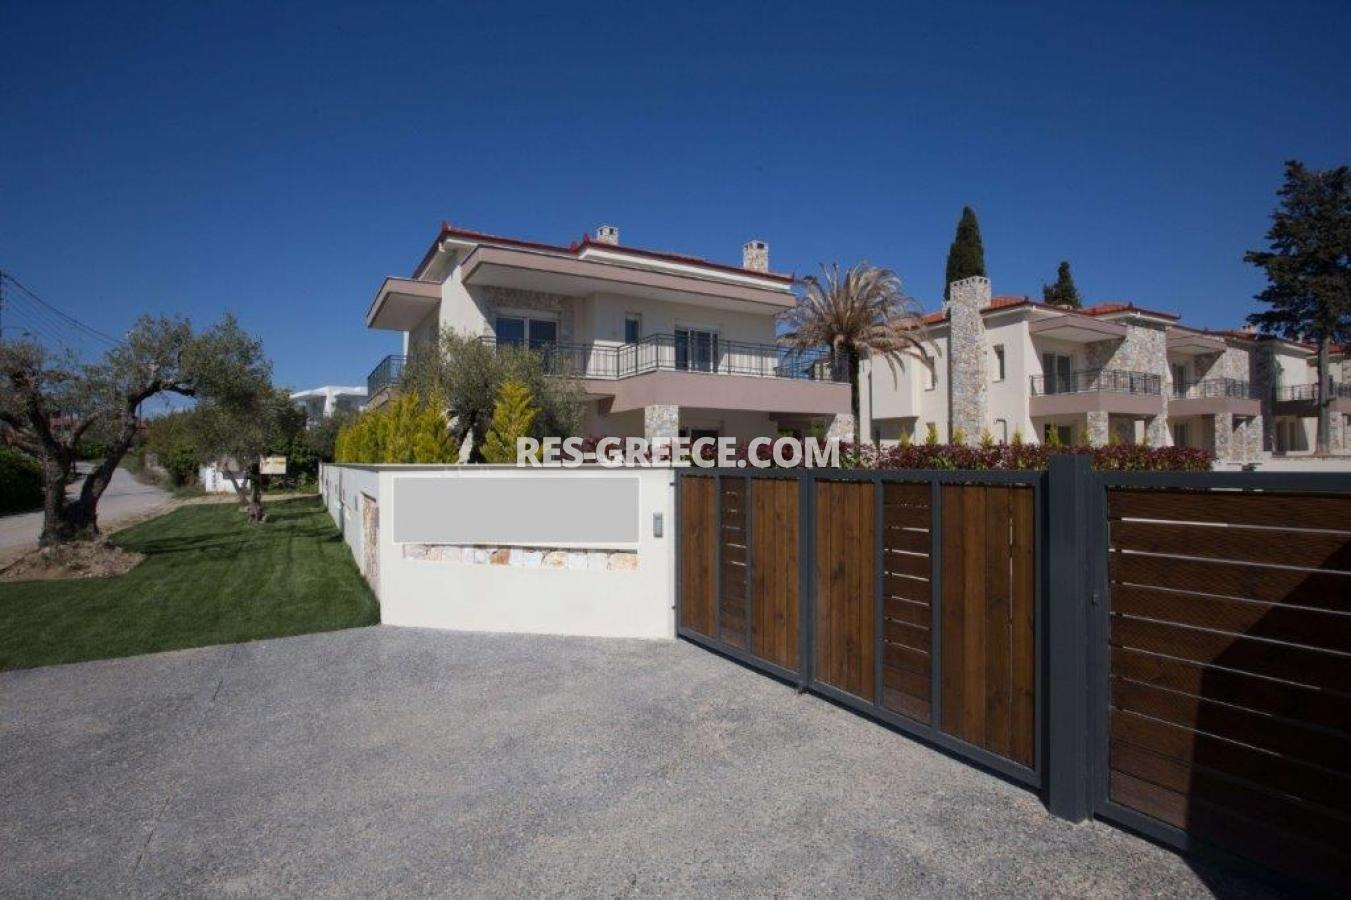 Mesimeri 1, Halkidiki-Kassandra, Greece - modern gated complex by the sea for vacation or rent - Photo 8